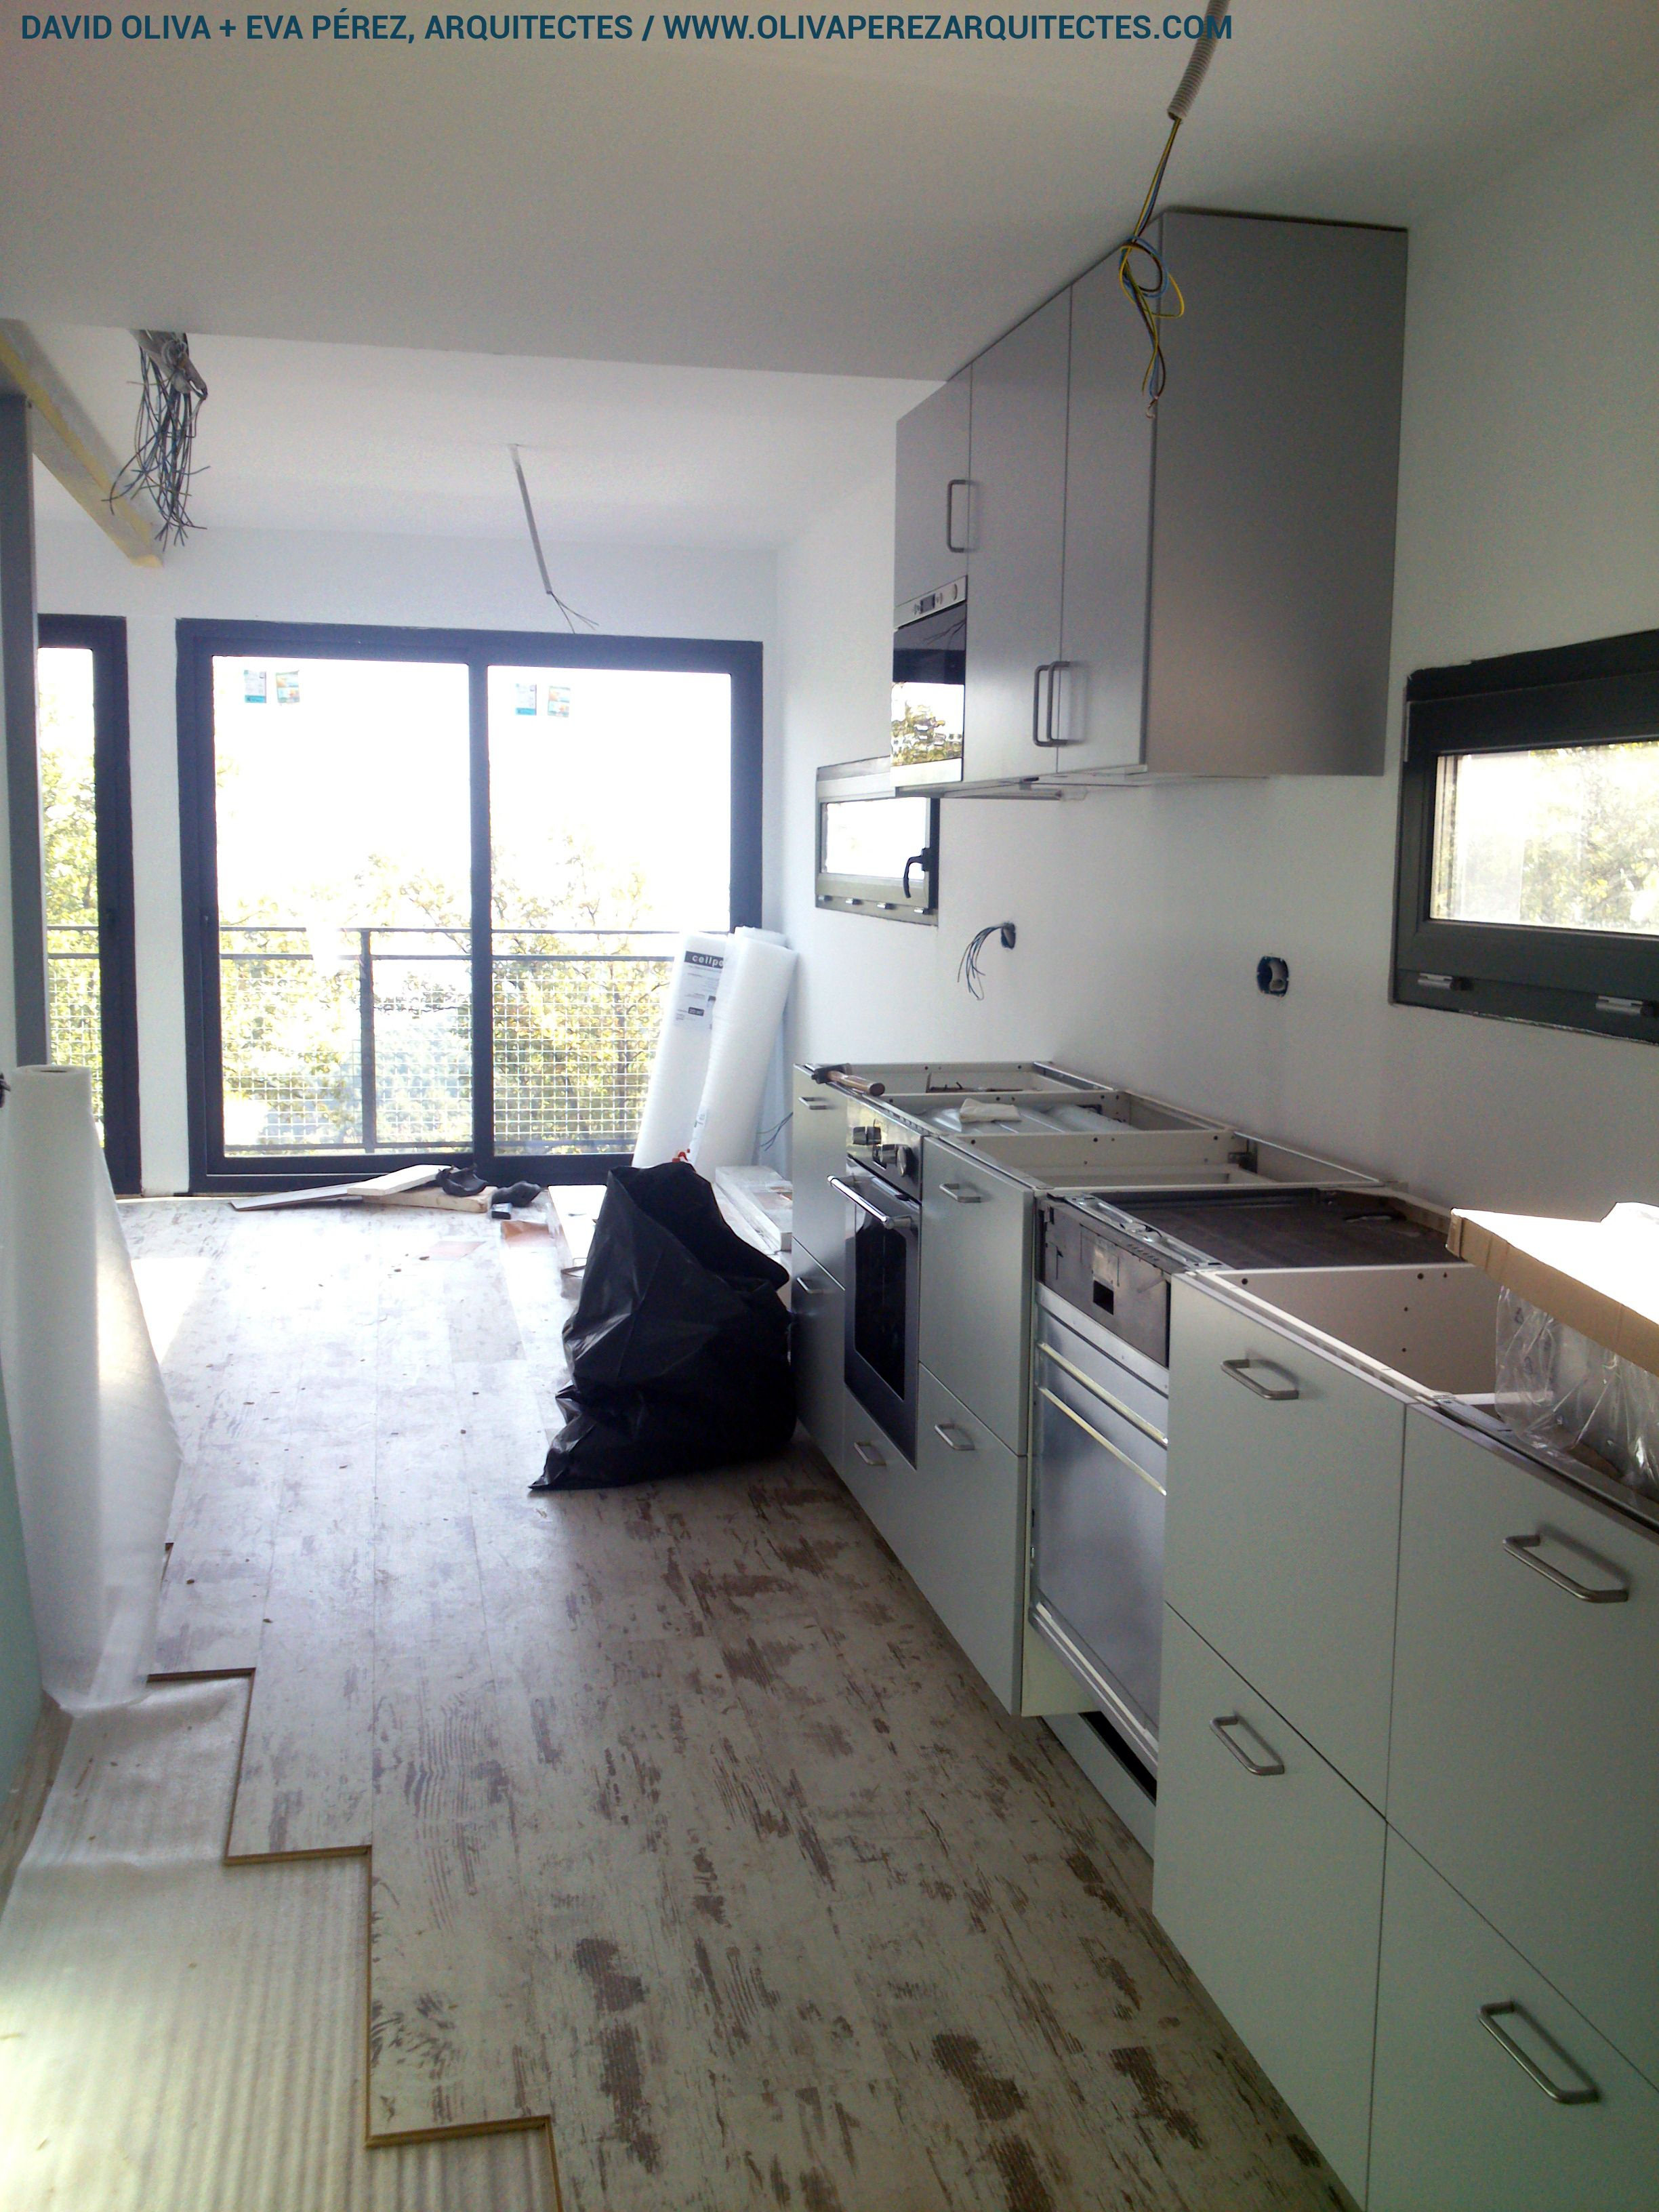 Container house in muntanyola barcelona construction process